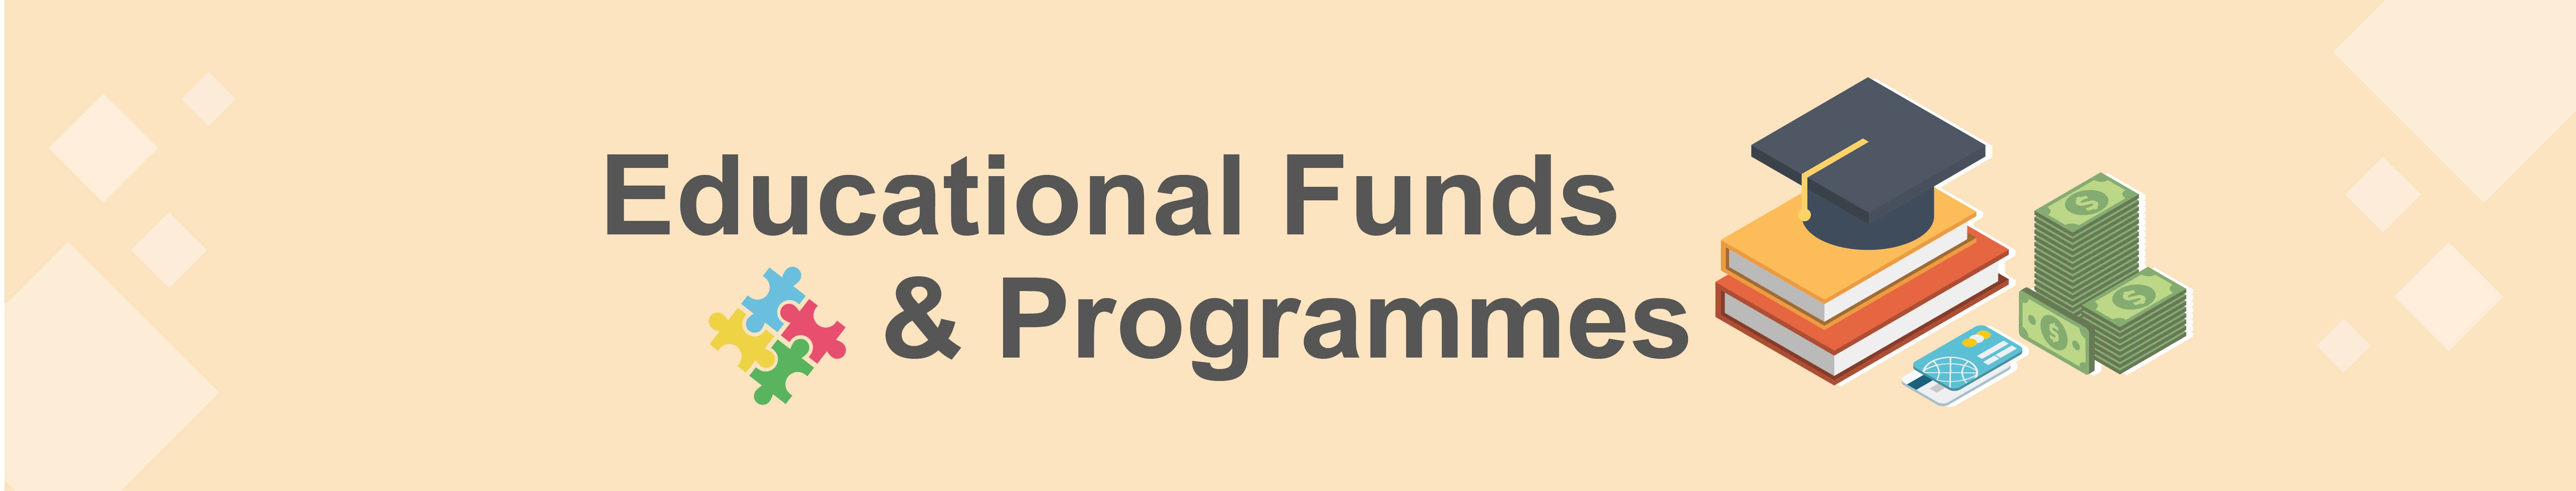 Educational Funds & Programmes